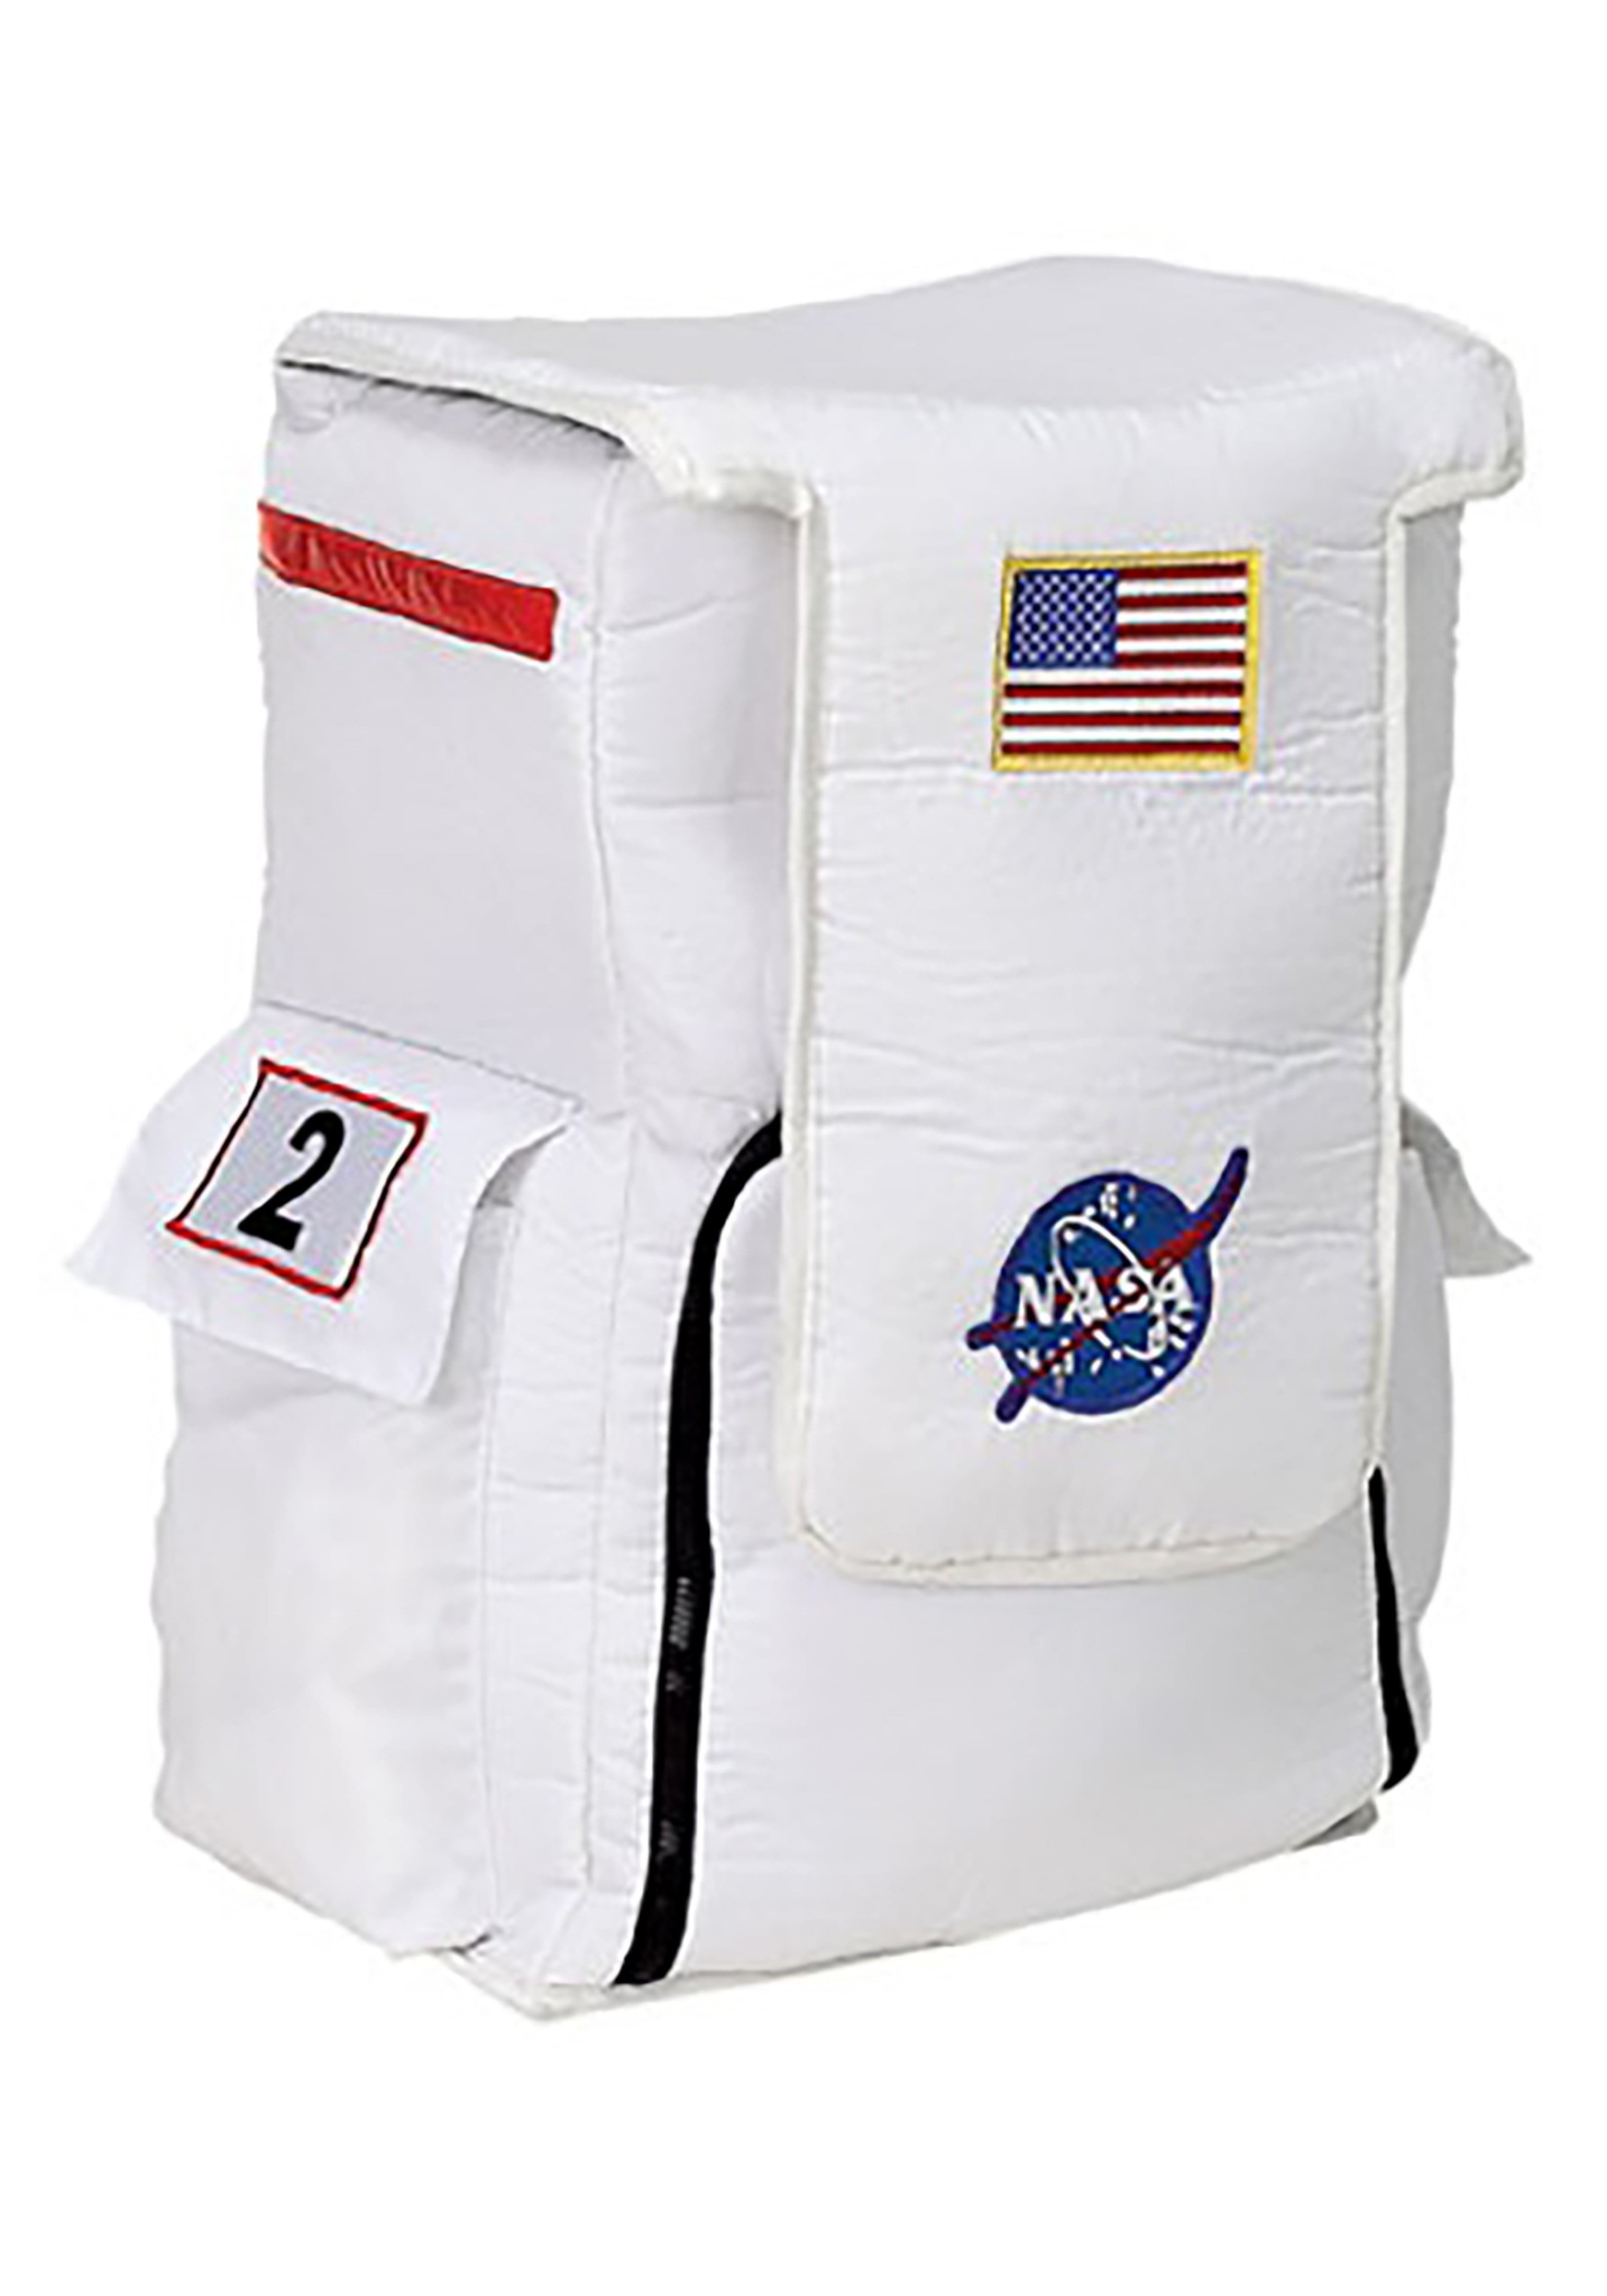 Astronaut Backpack For Child